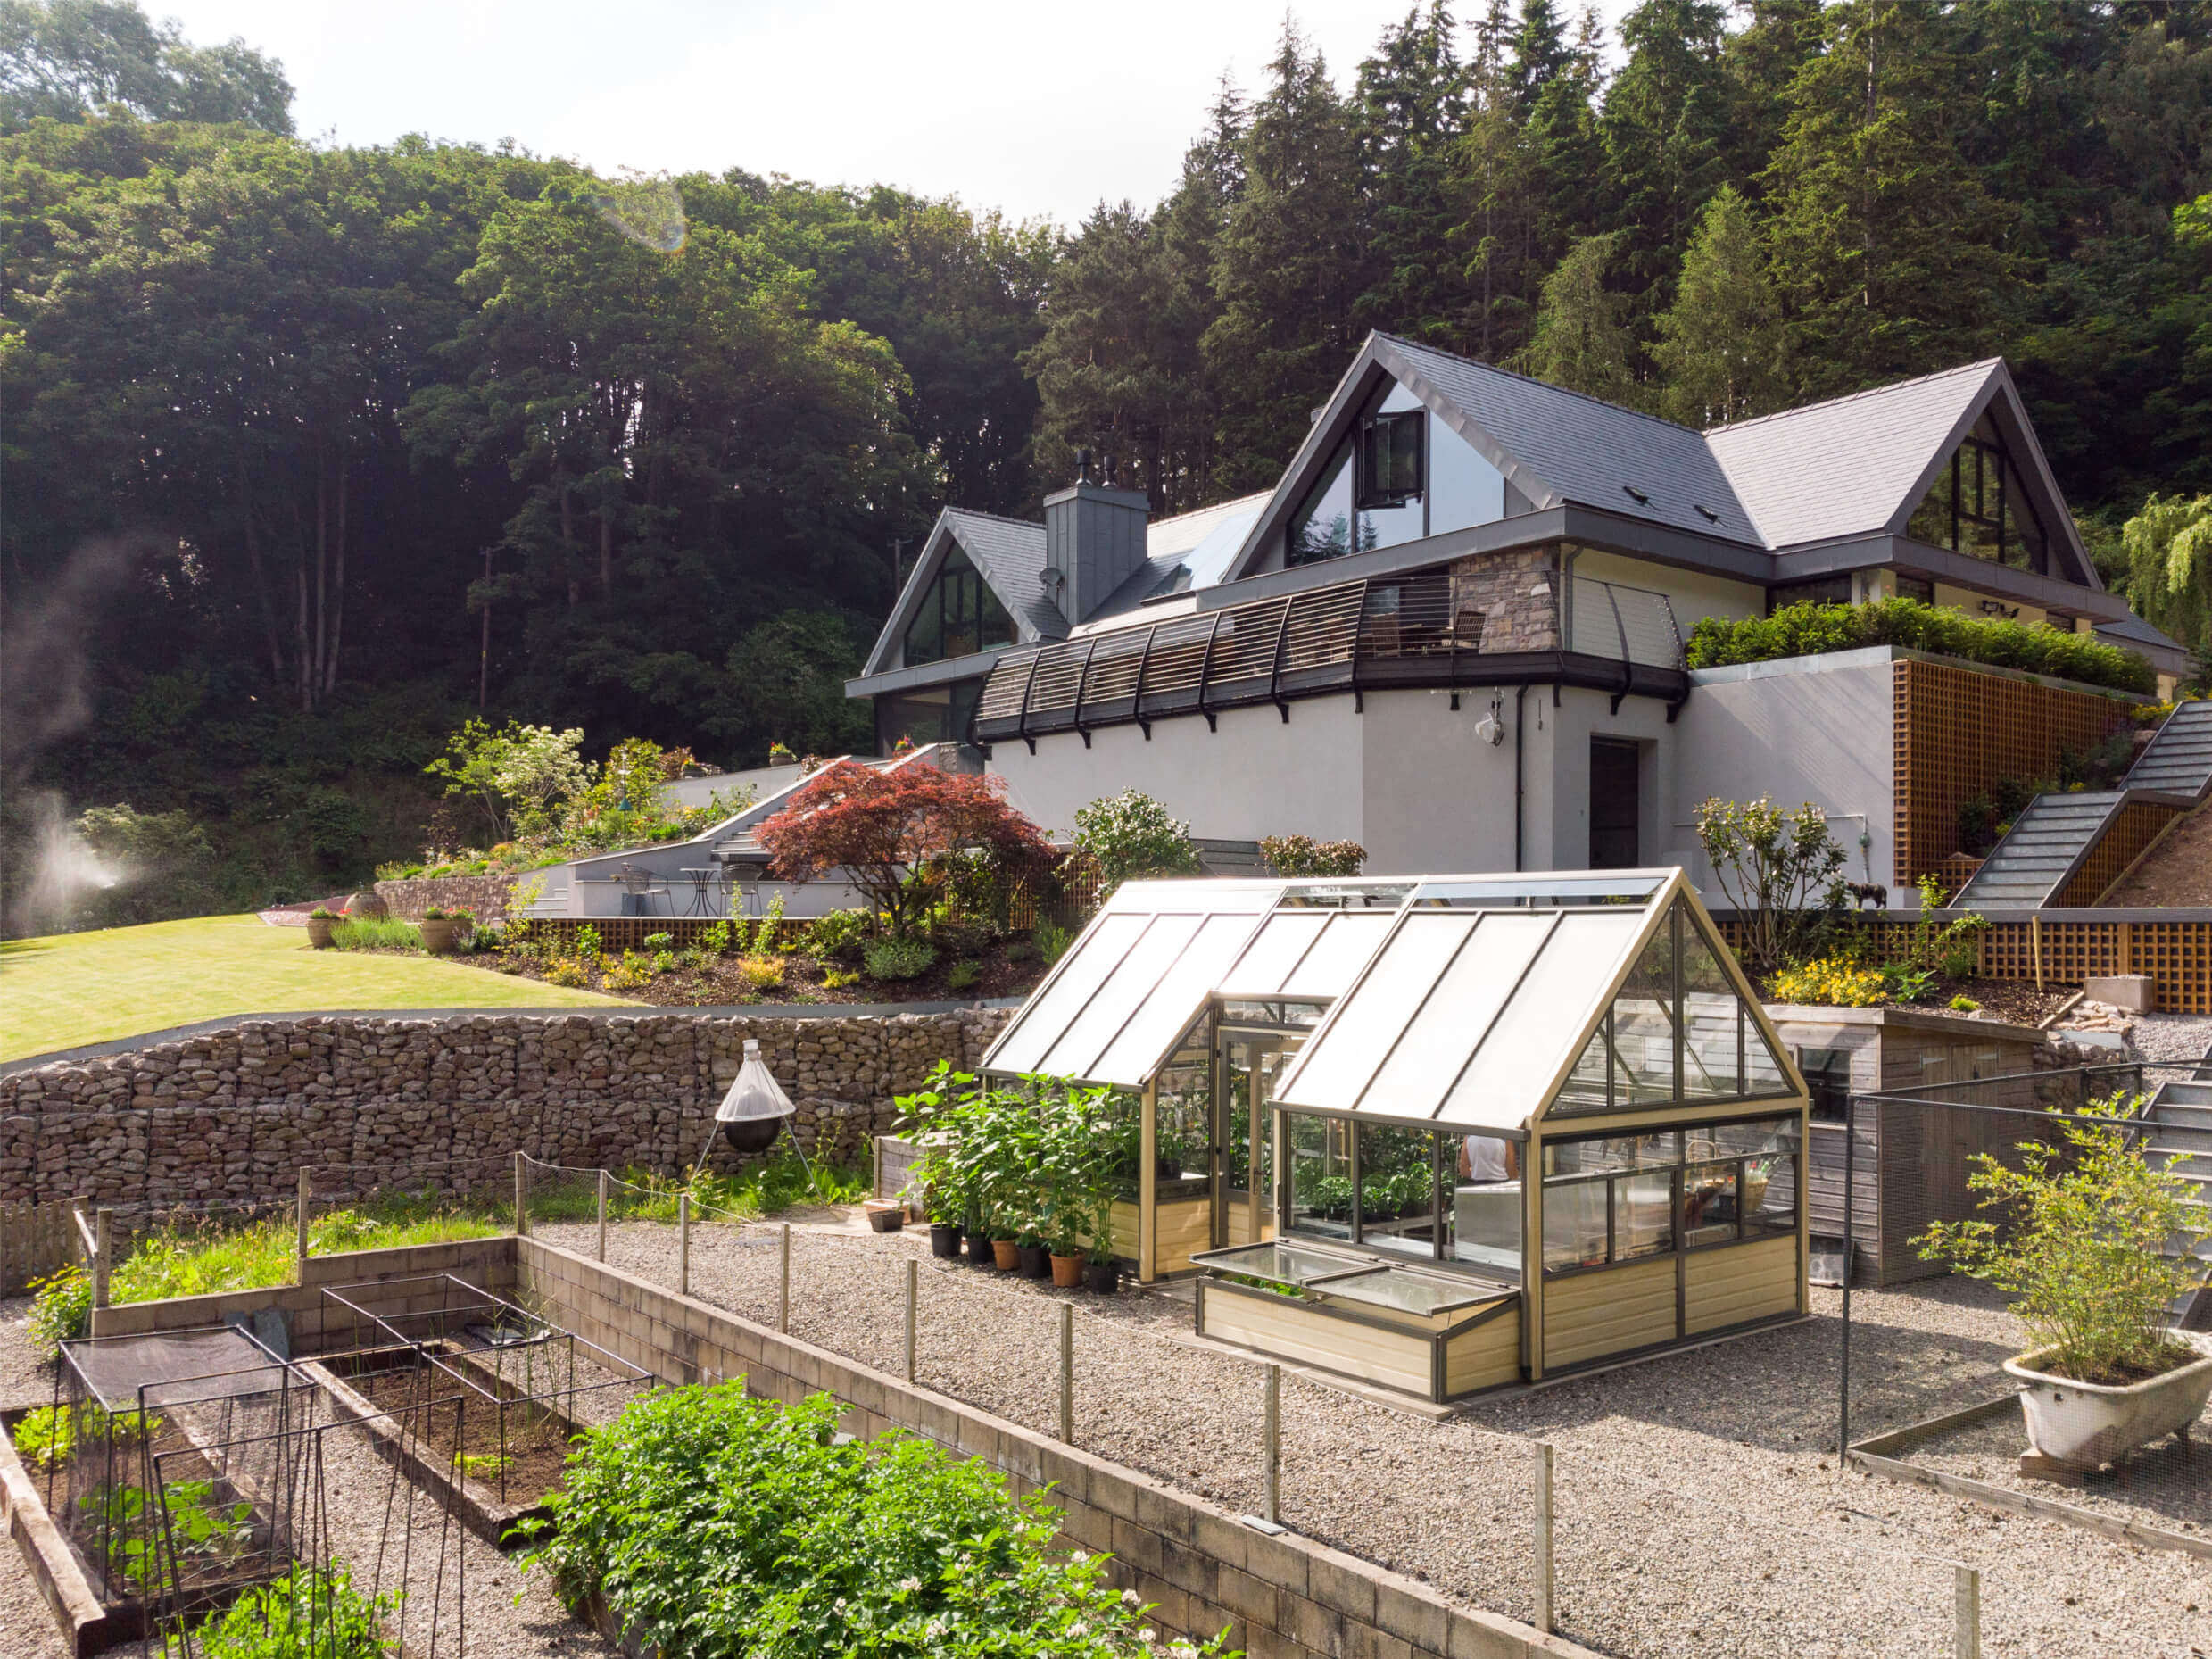 cultivar greenhouse in front of newbuild house